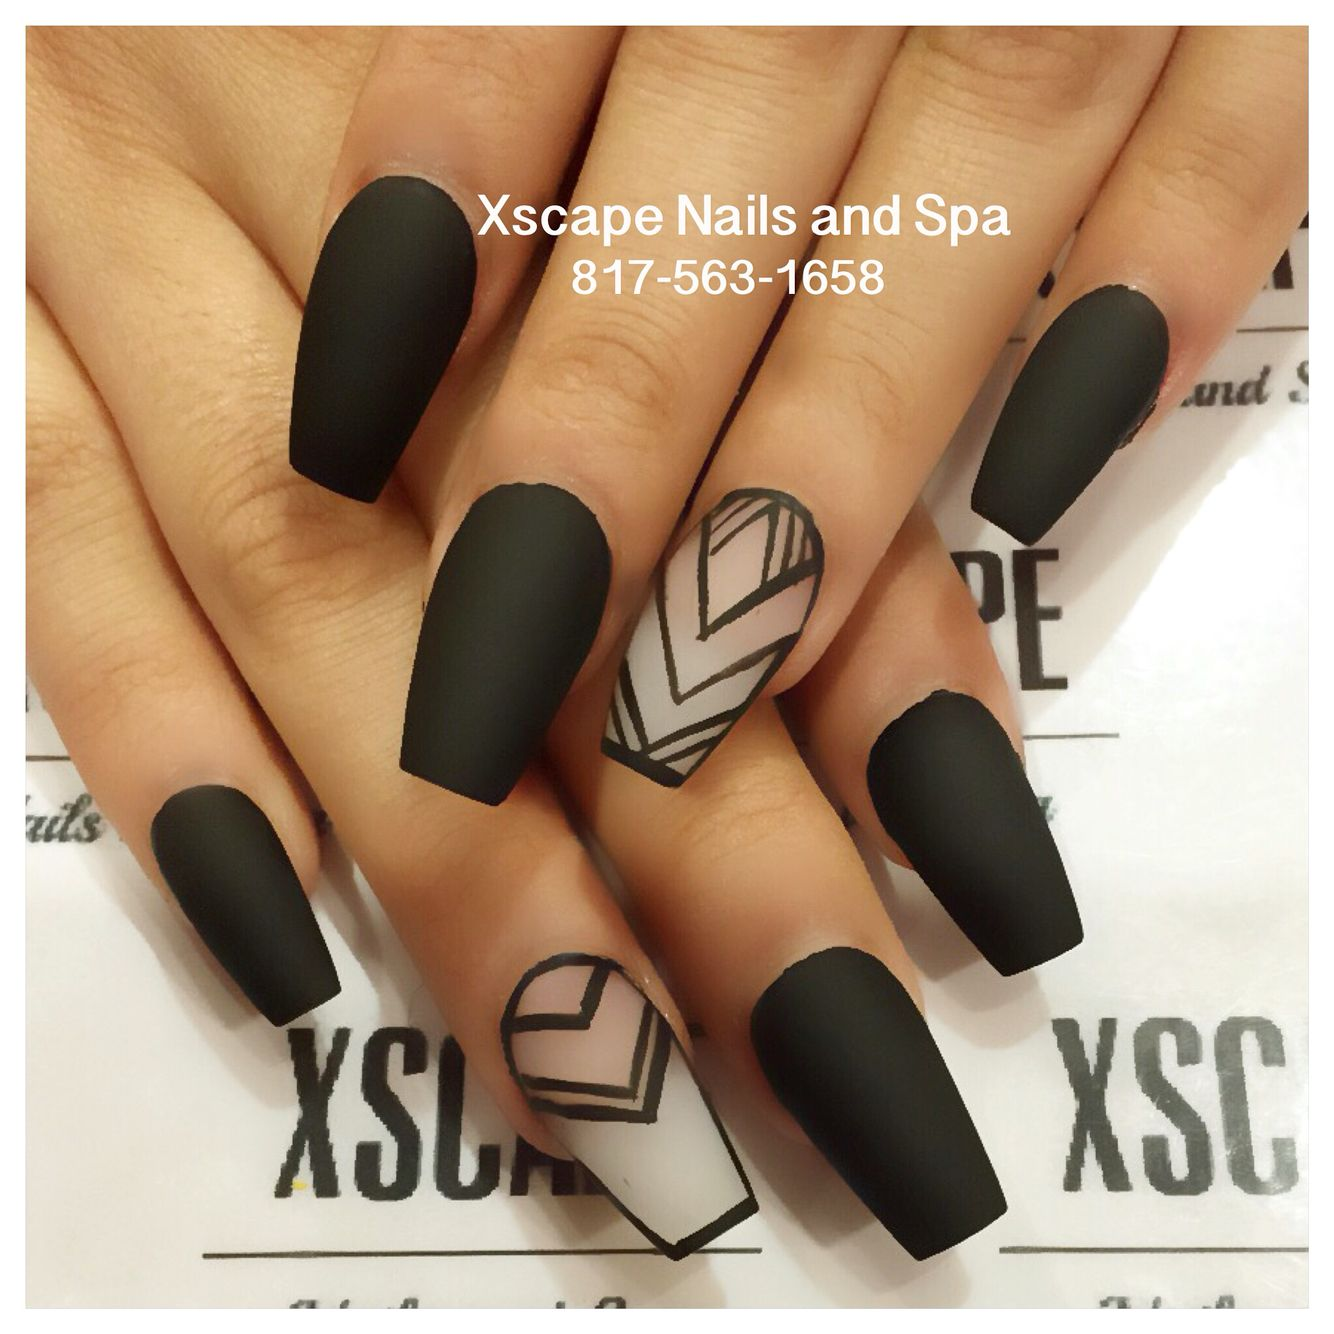 Matte negative space nail designs cute nails designs pinterest matte negative space nail designs prinsesfo Gallery